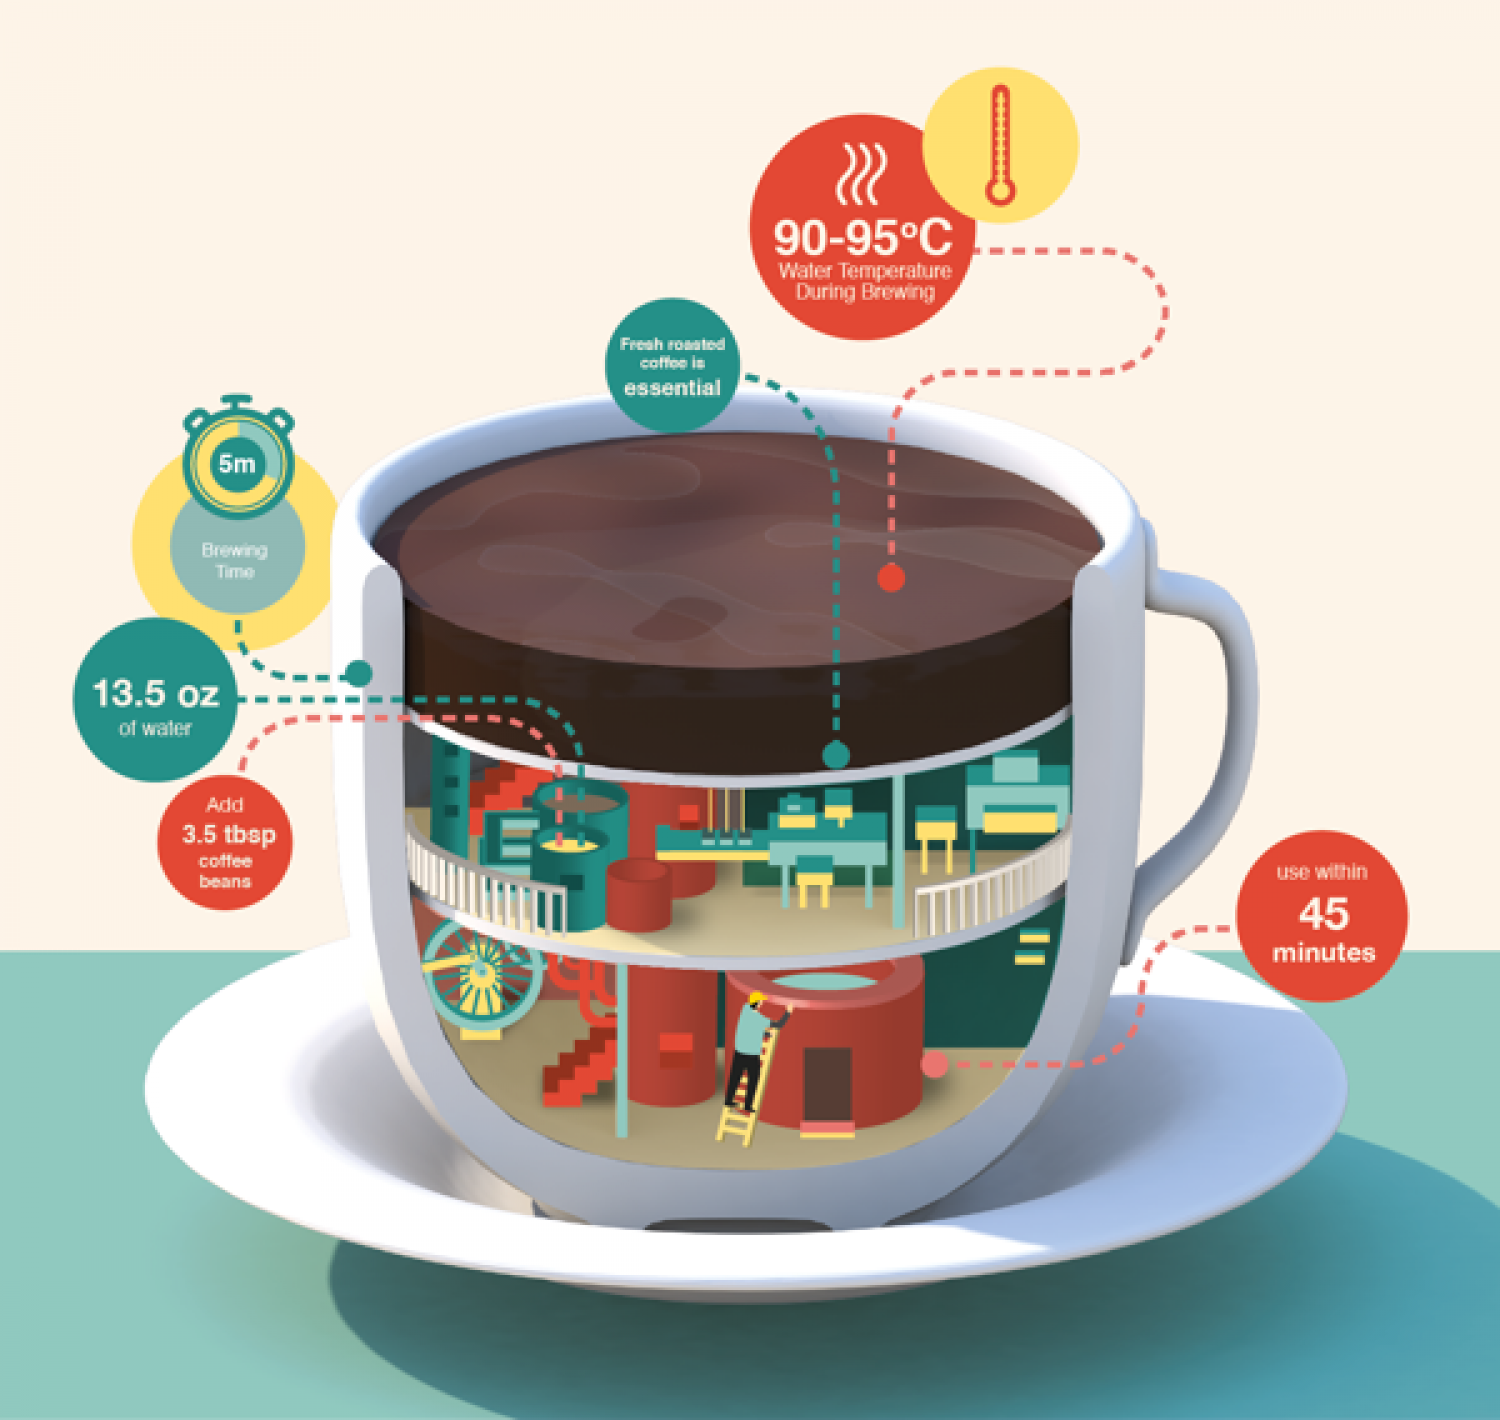 Imaginary Factory Infographic